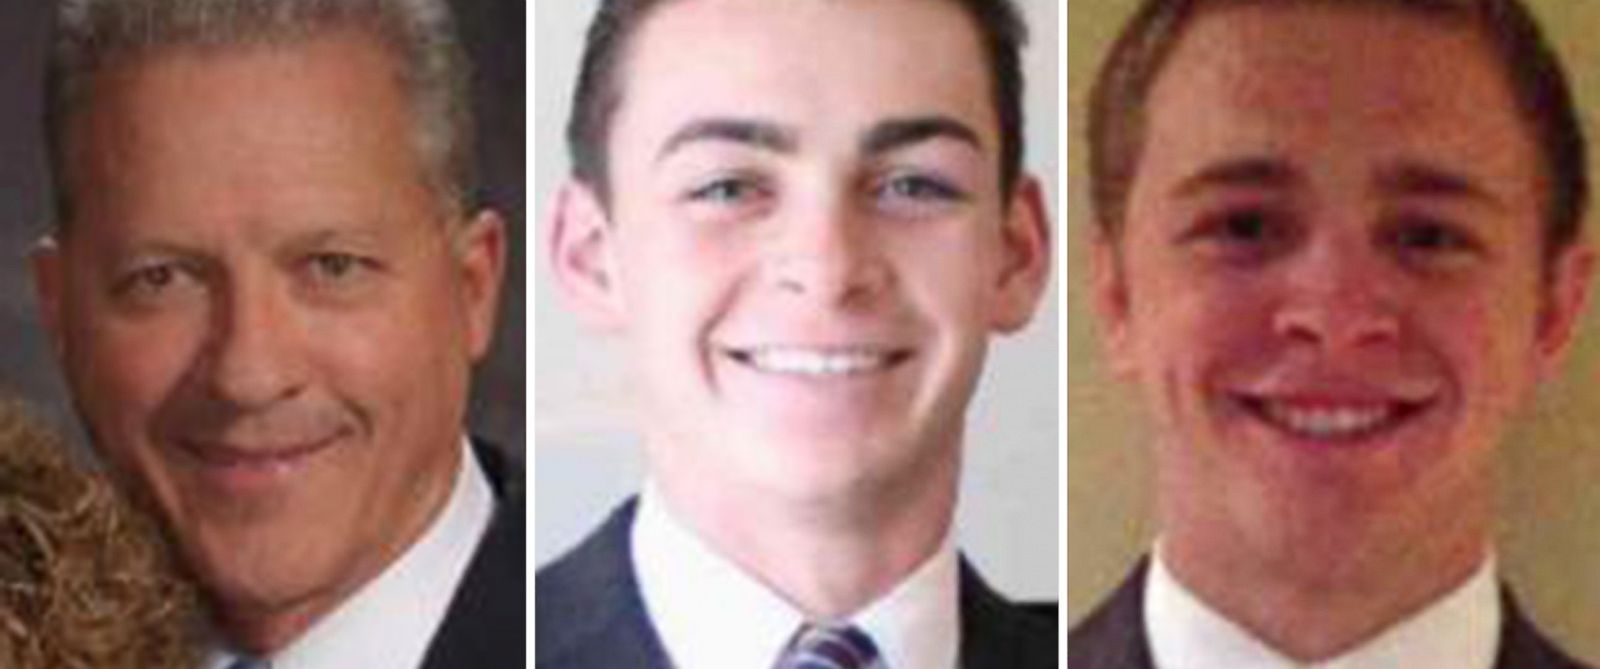 PHOTO: Richard Norby, Joseph Empey and Mason Wells are seen in undated handout photos released by the Church of Jesus Christ of Latter-day Saints on March 22, 2016.